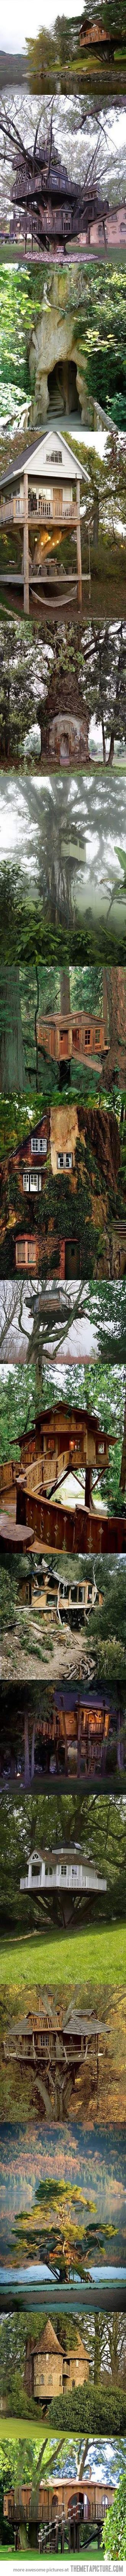 Now these are tree houses!!!